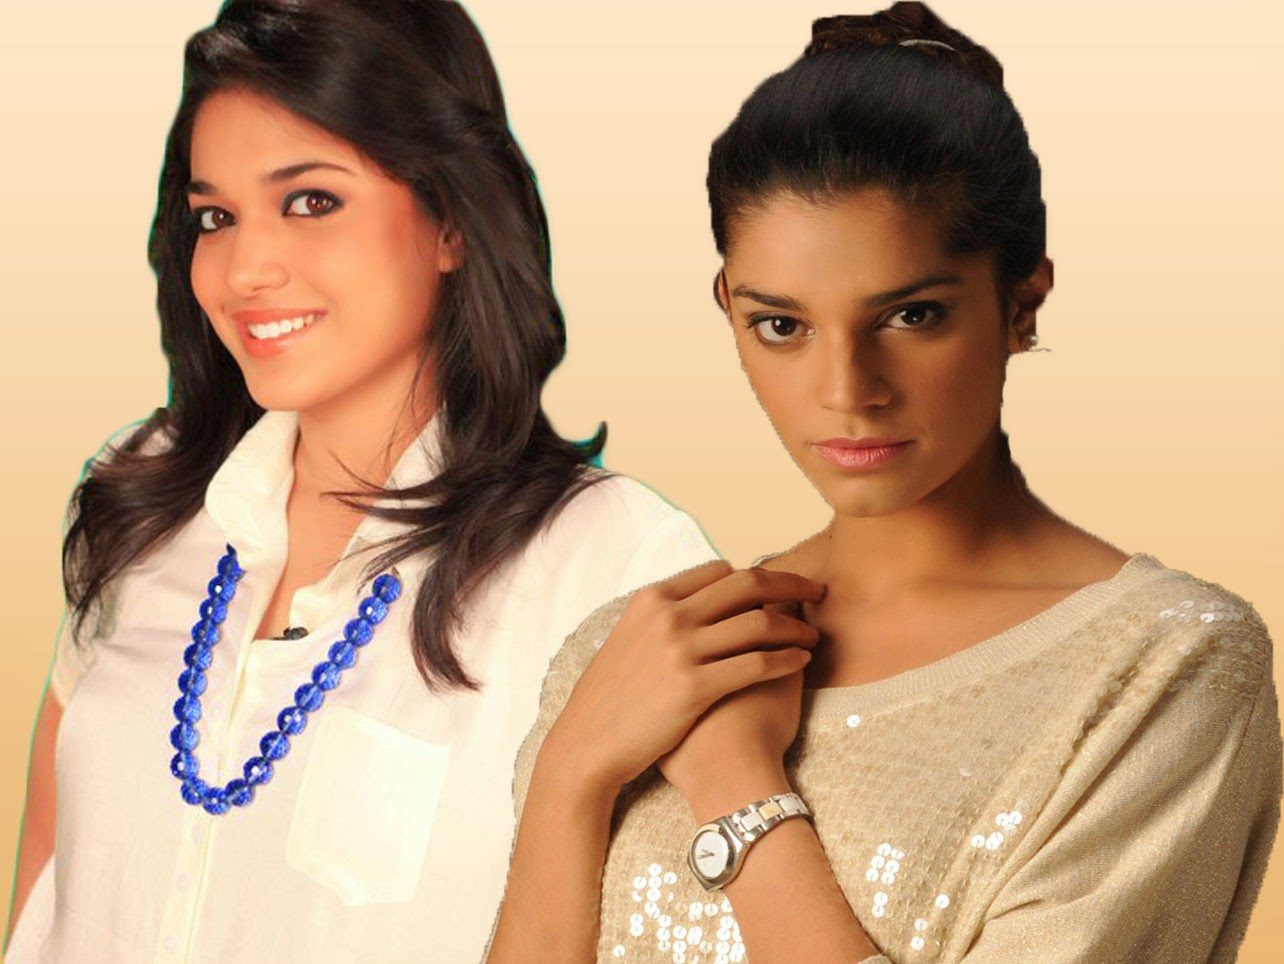 Sanam Saeed and Sanam Jang - Pakistani TV actresses